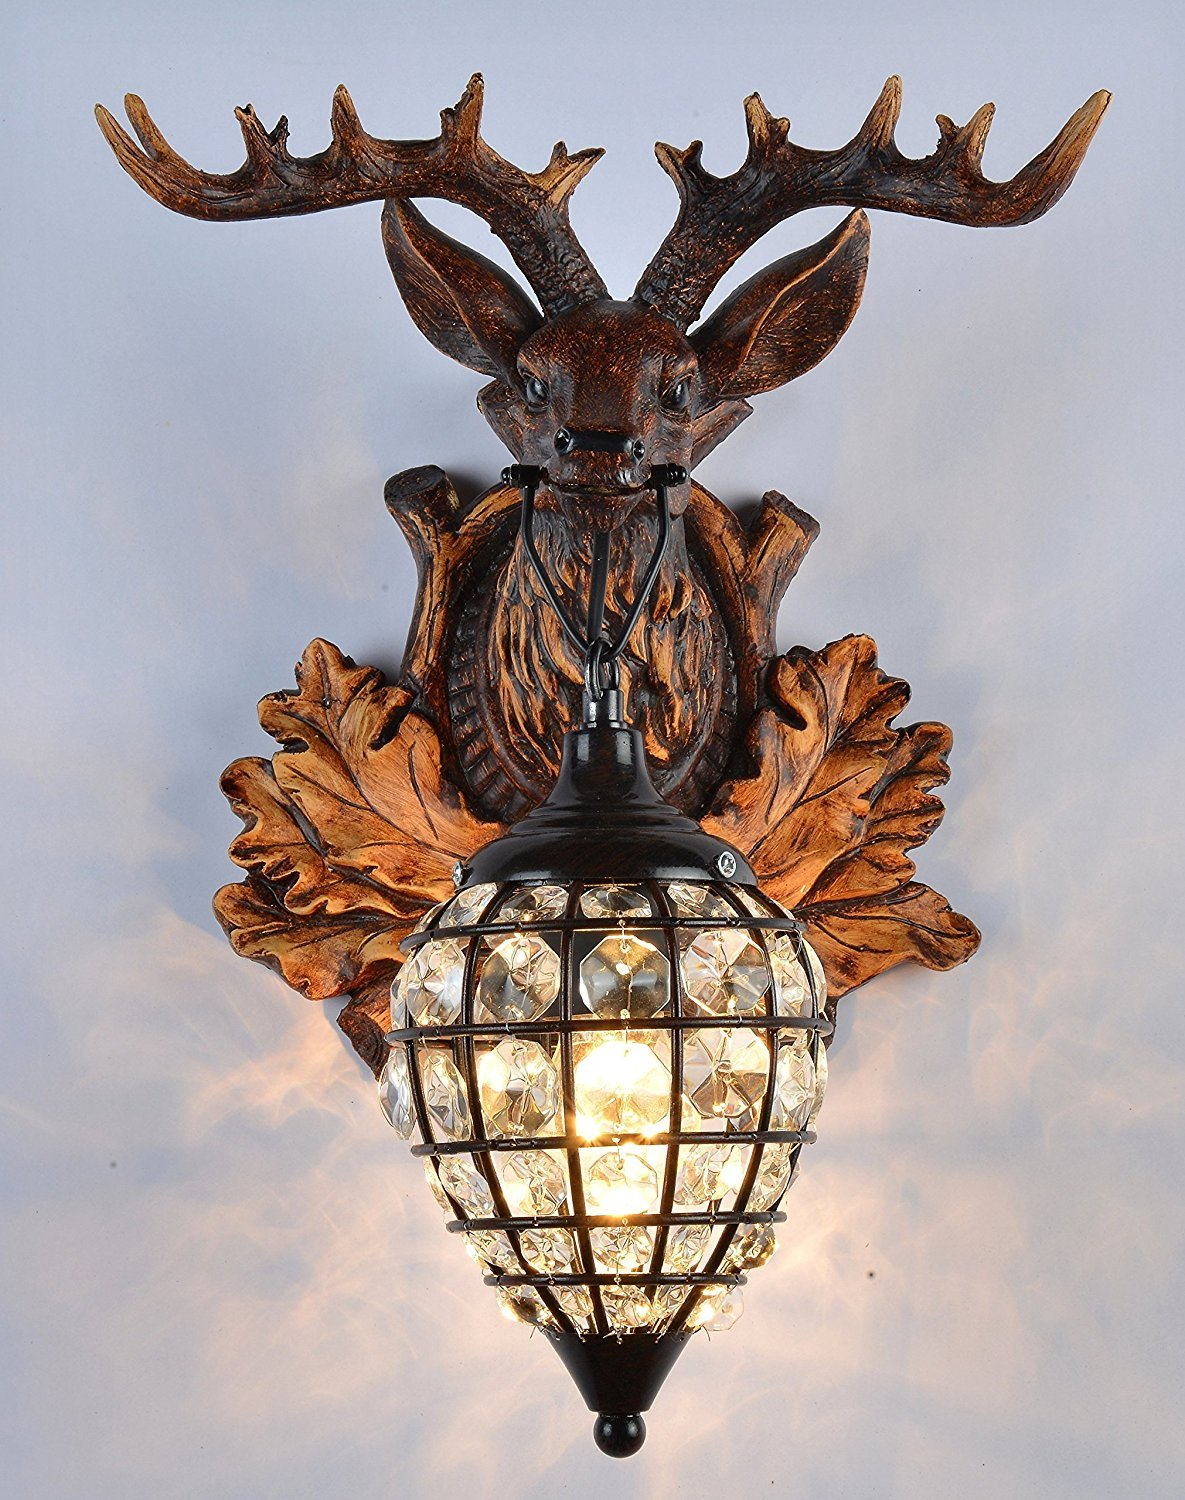 EFFORTINC Deer heads Antlers vintage style resin wall lamp 1 Light, Rural countryside antler wall lamp,Living room,Bar,Cafe